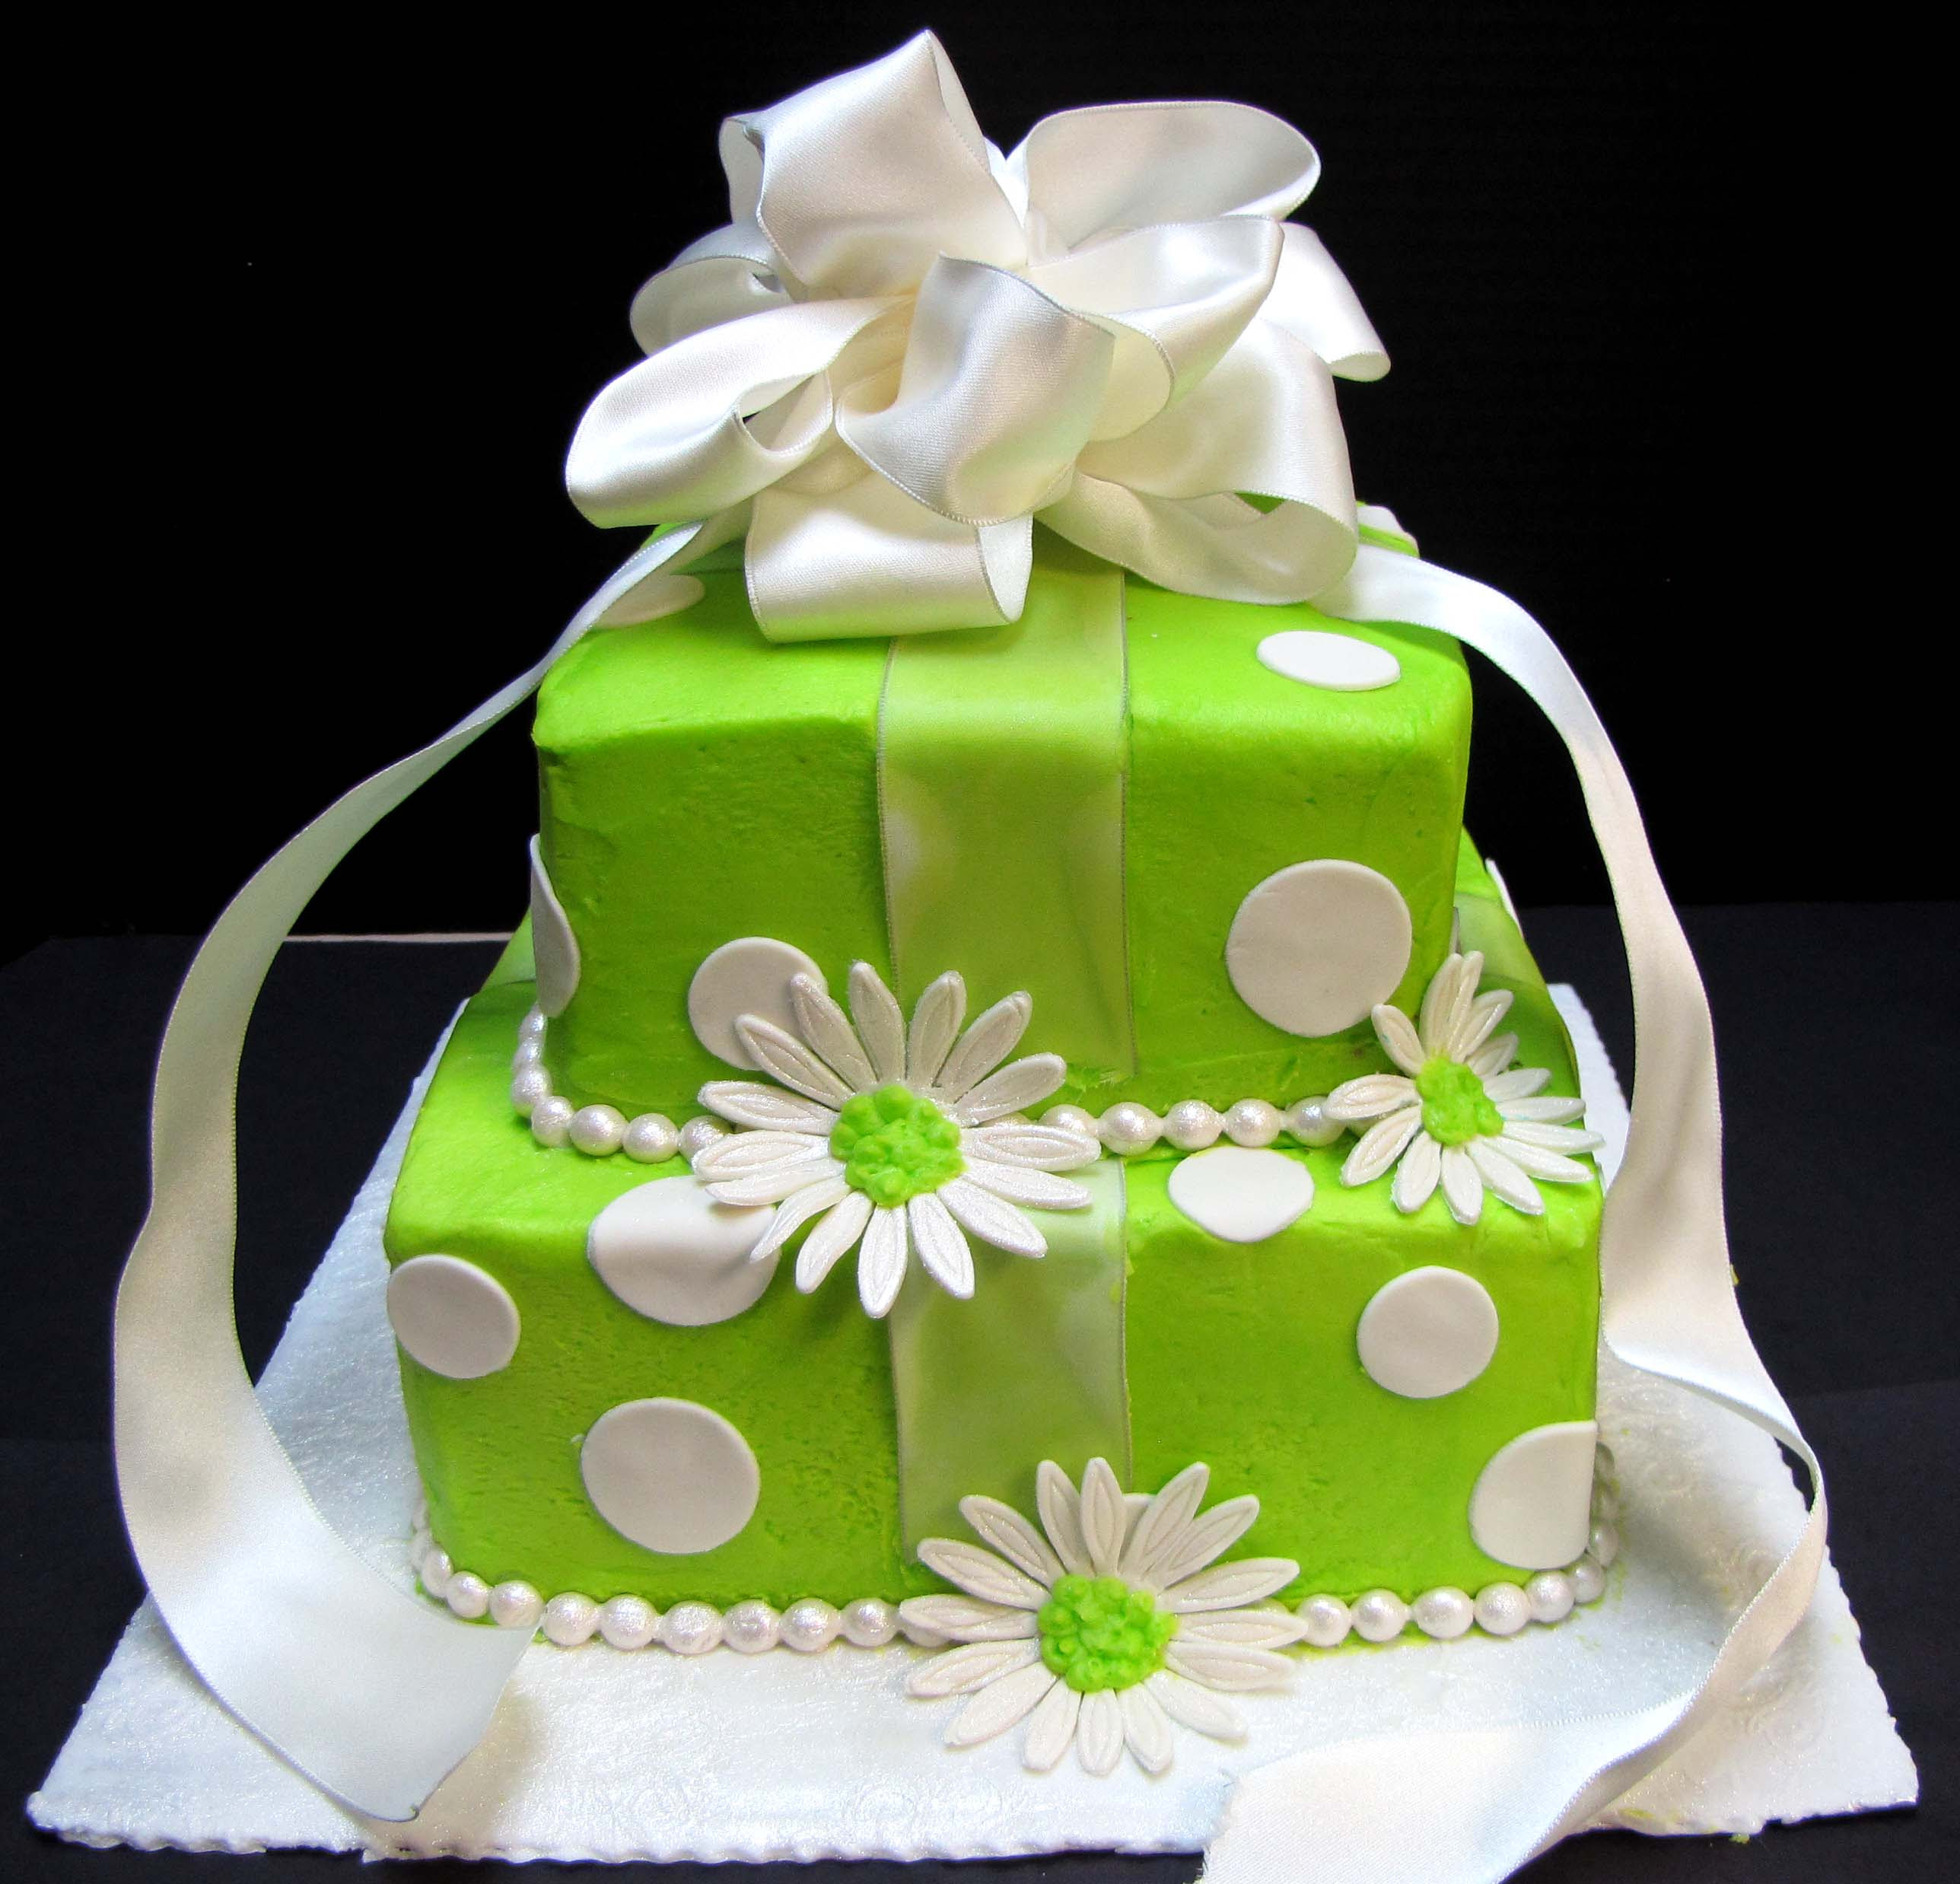 Great And Touching Birthday Wishes To Wish Your Friend A Happy